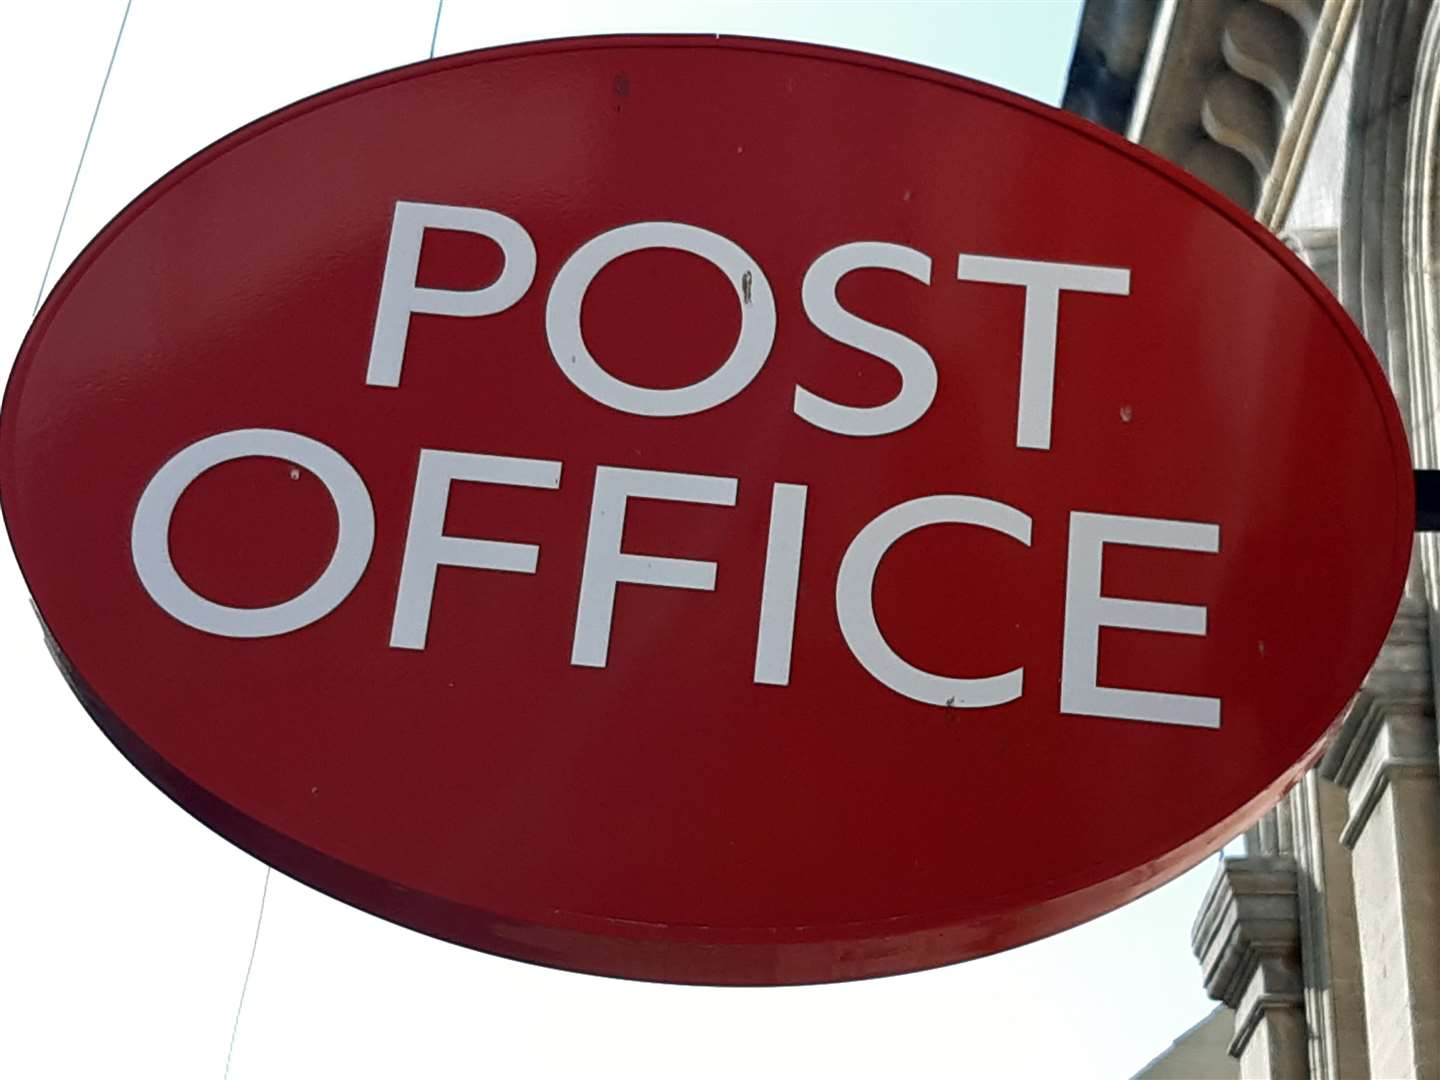 Hundreds of thousands of people still receive pensions and benefits on Swiss Post accounts